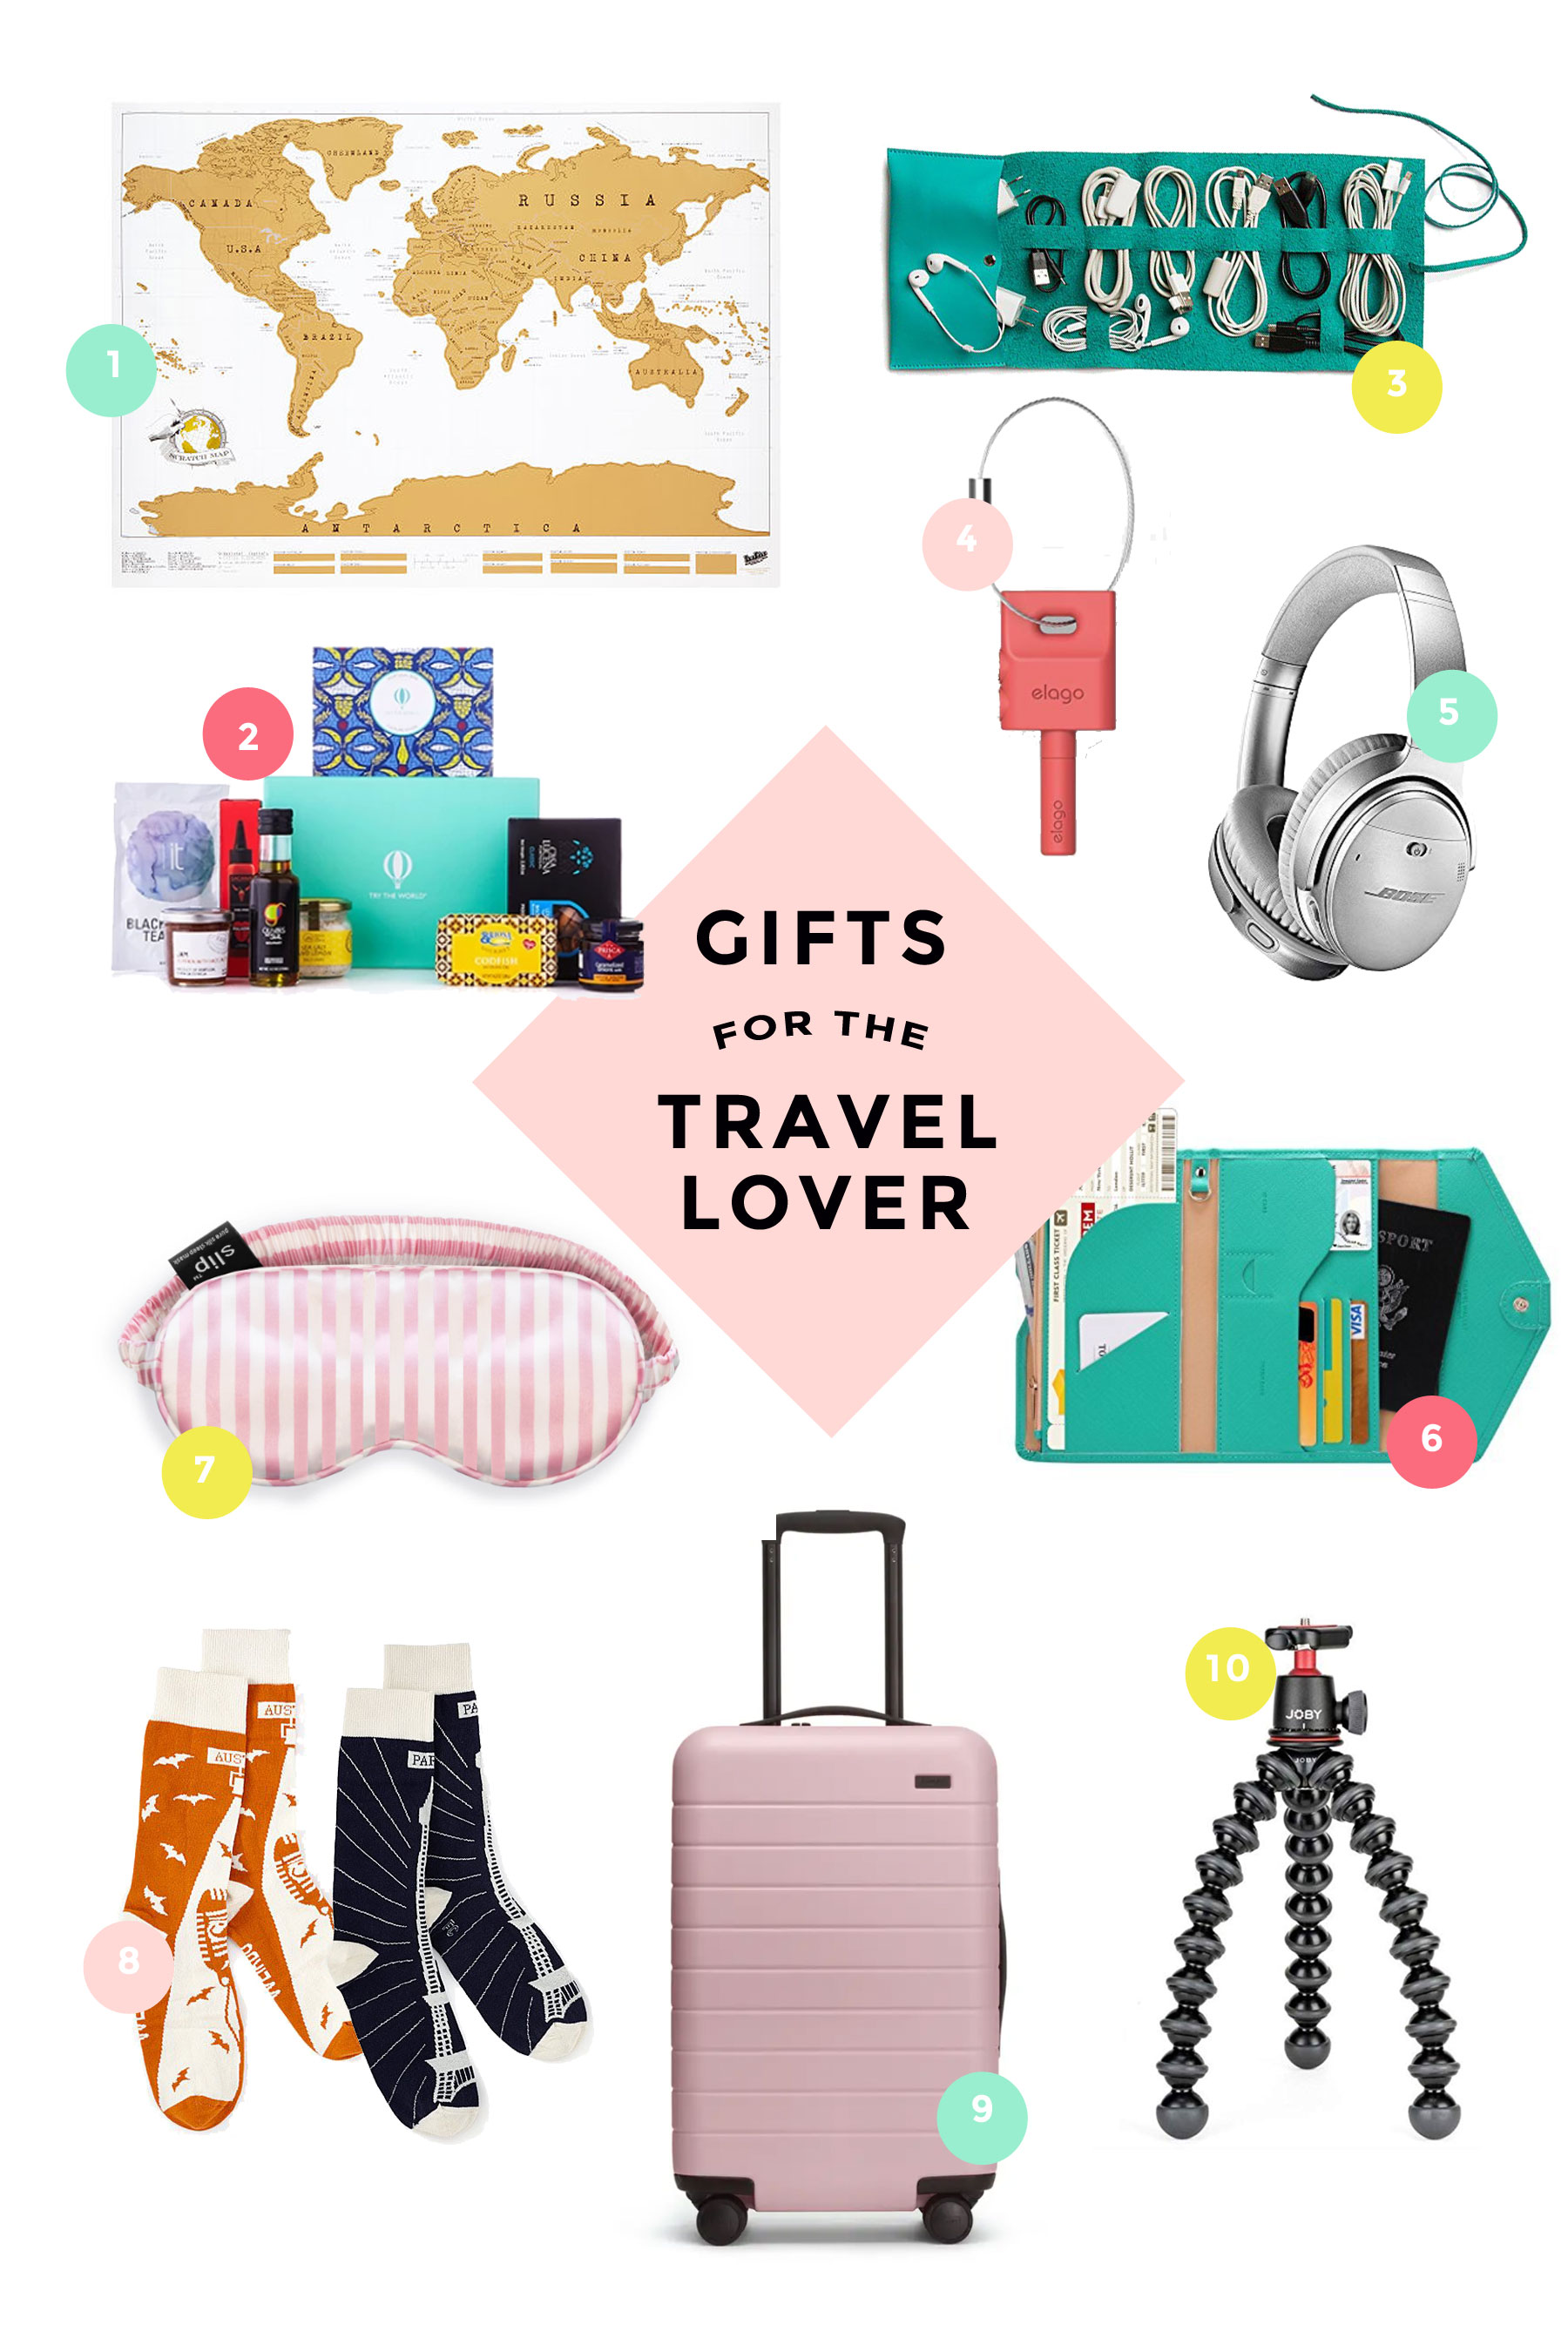 Gift ideas for that traveler you love. These are sure to be something fun and will help make traveling easier and more fun.